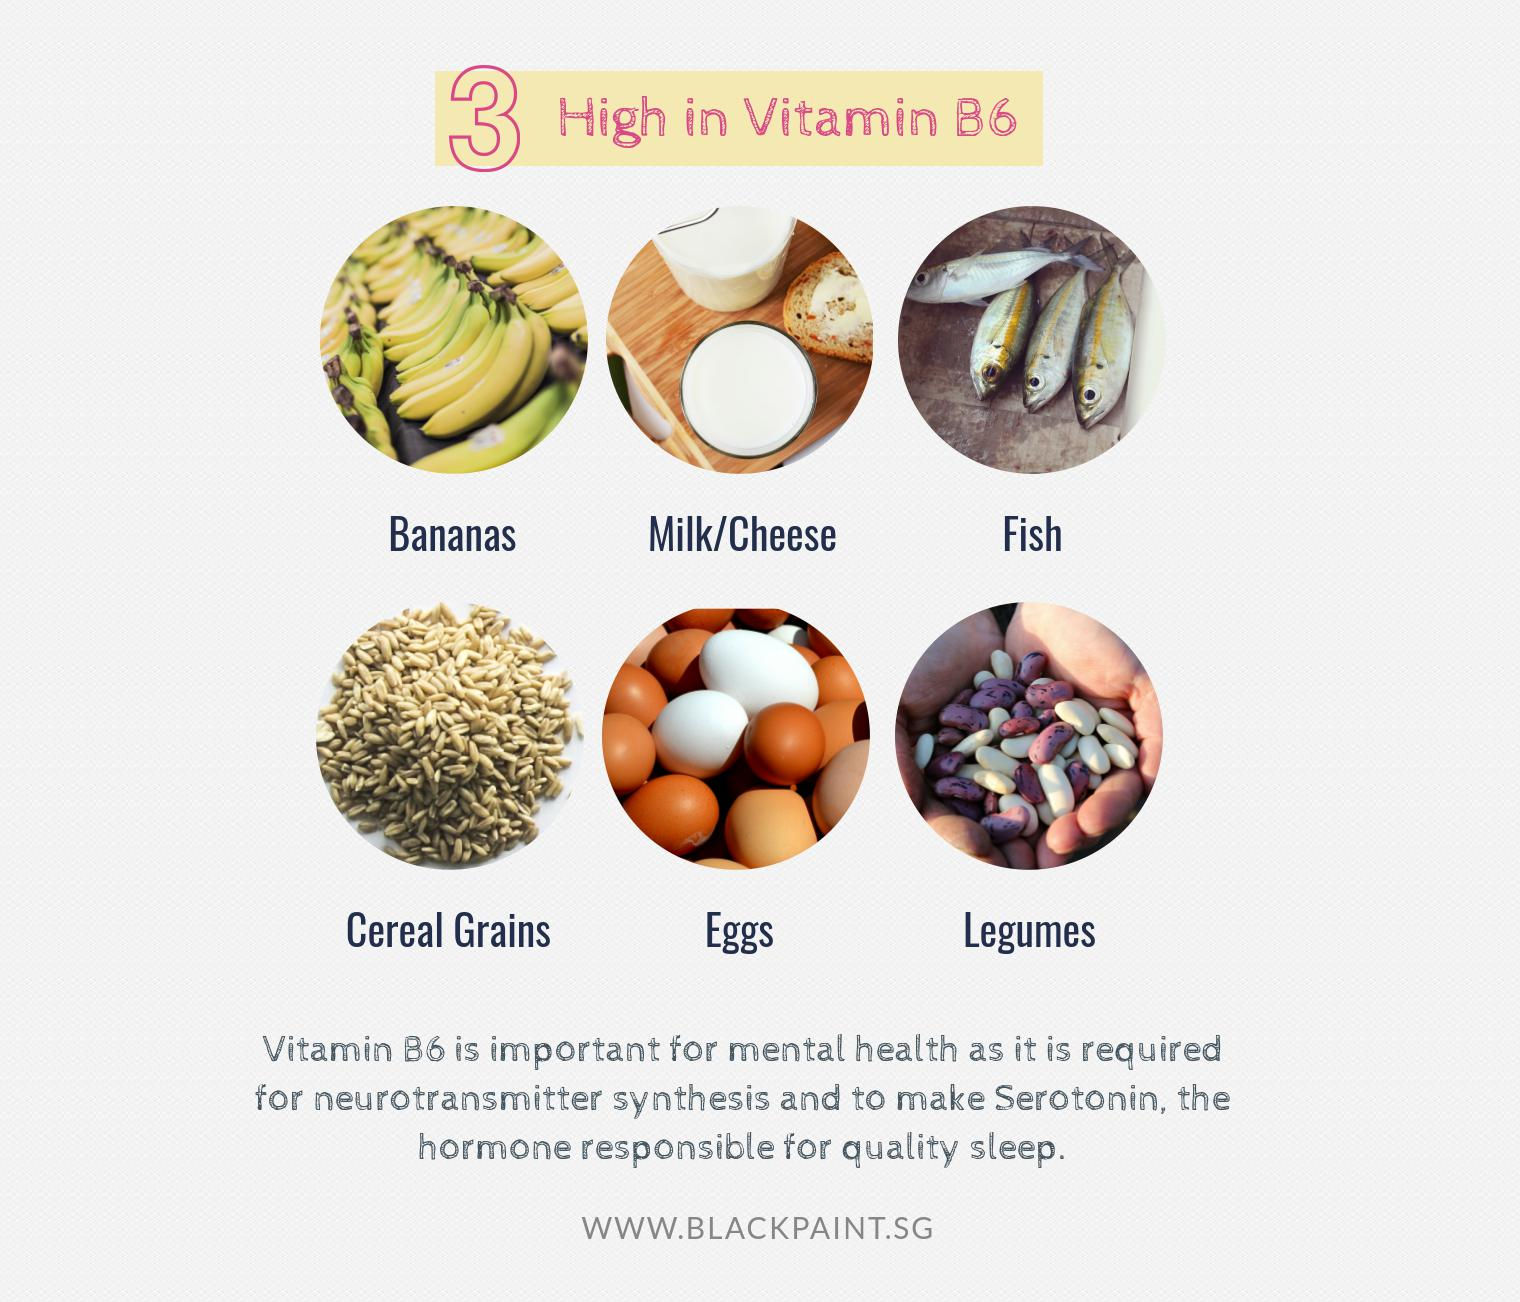 choose foods that are high in vitamin B6